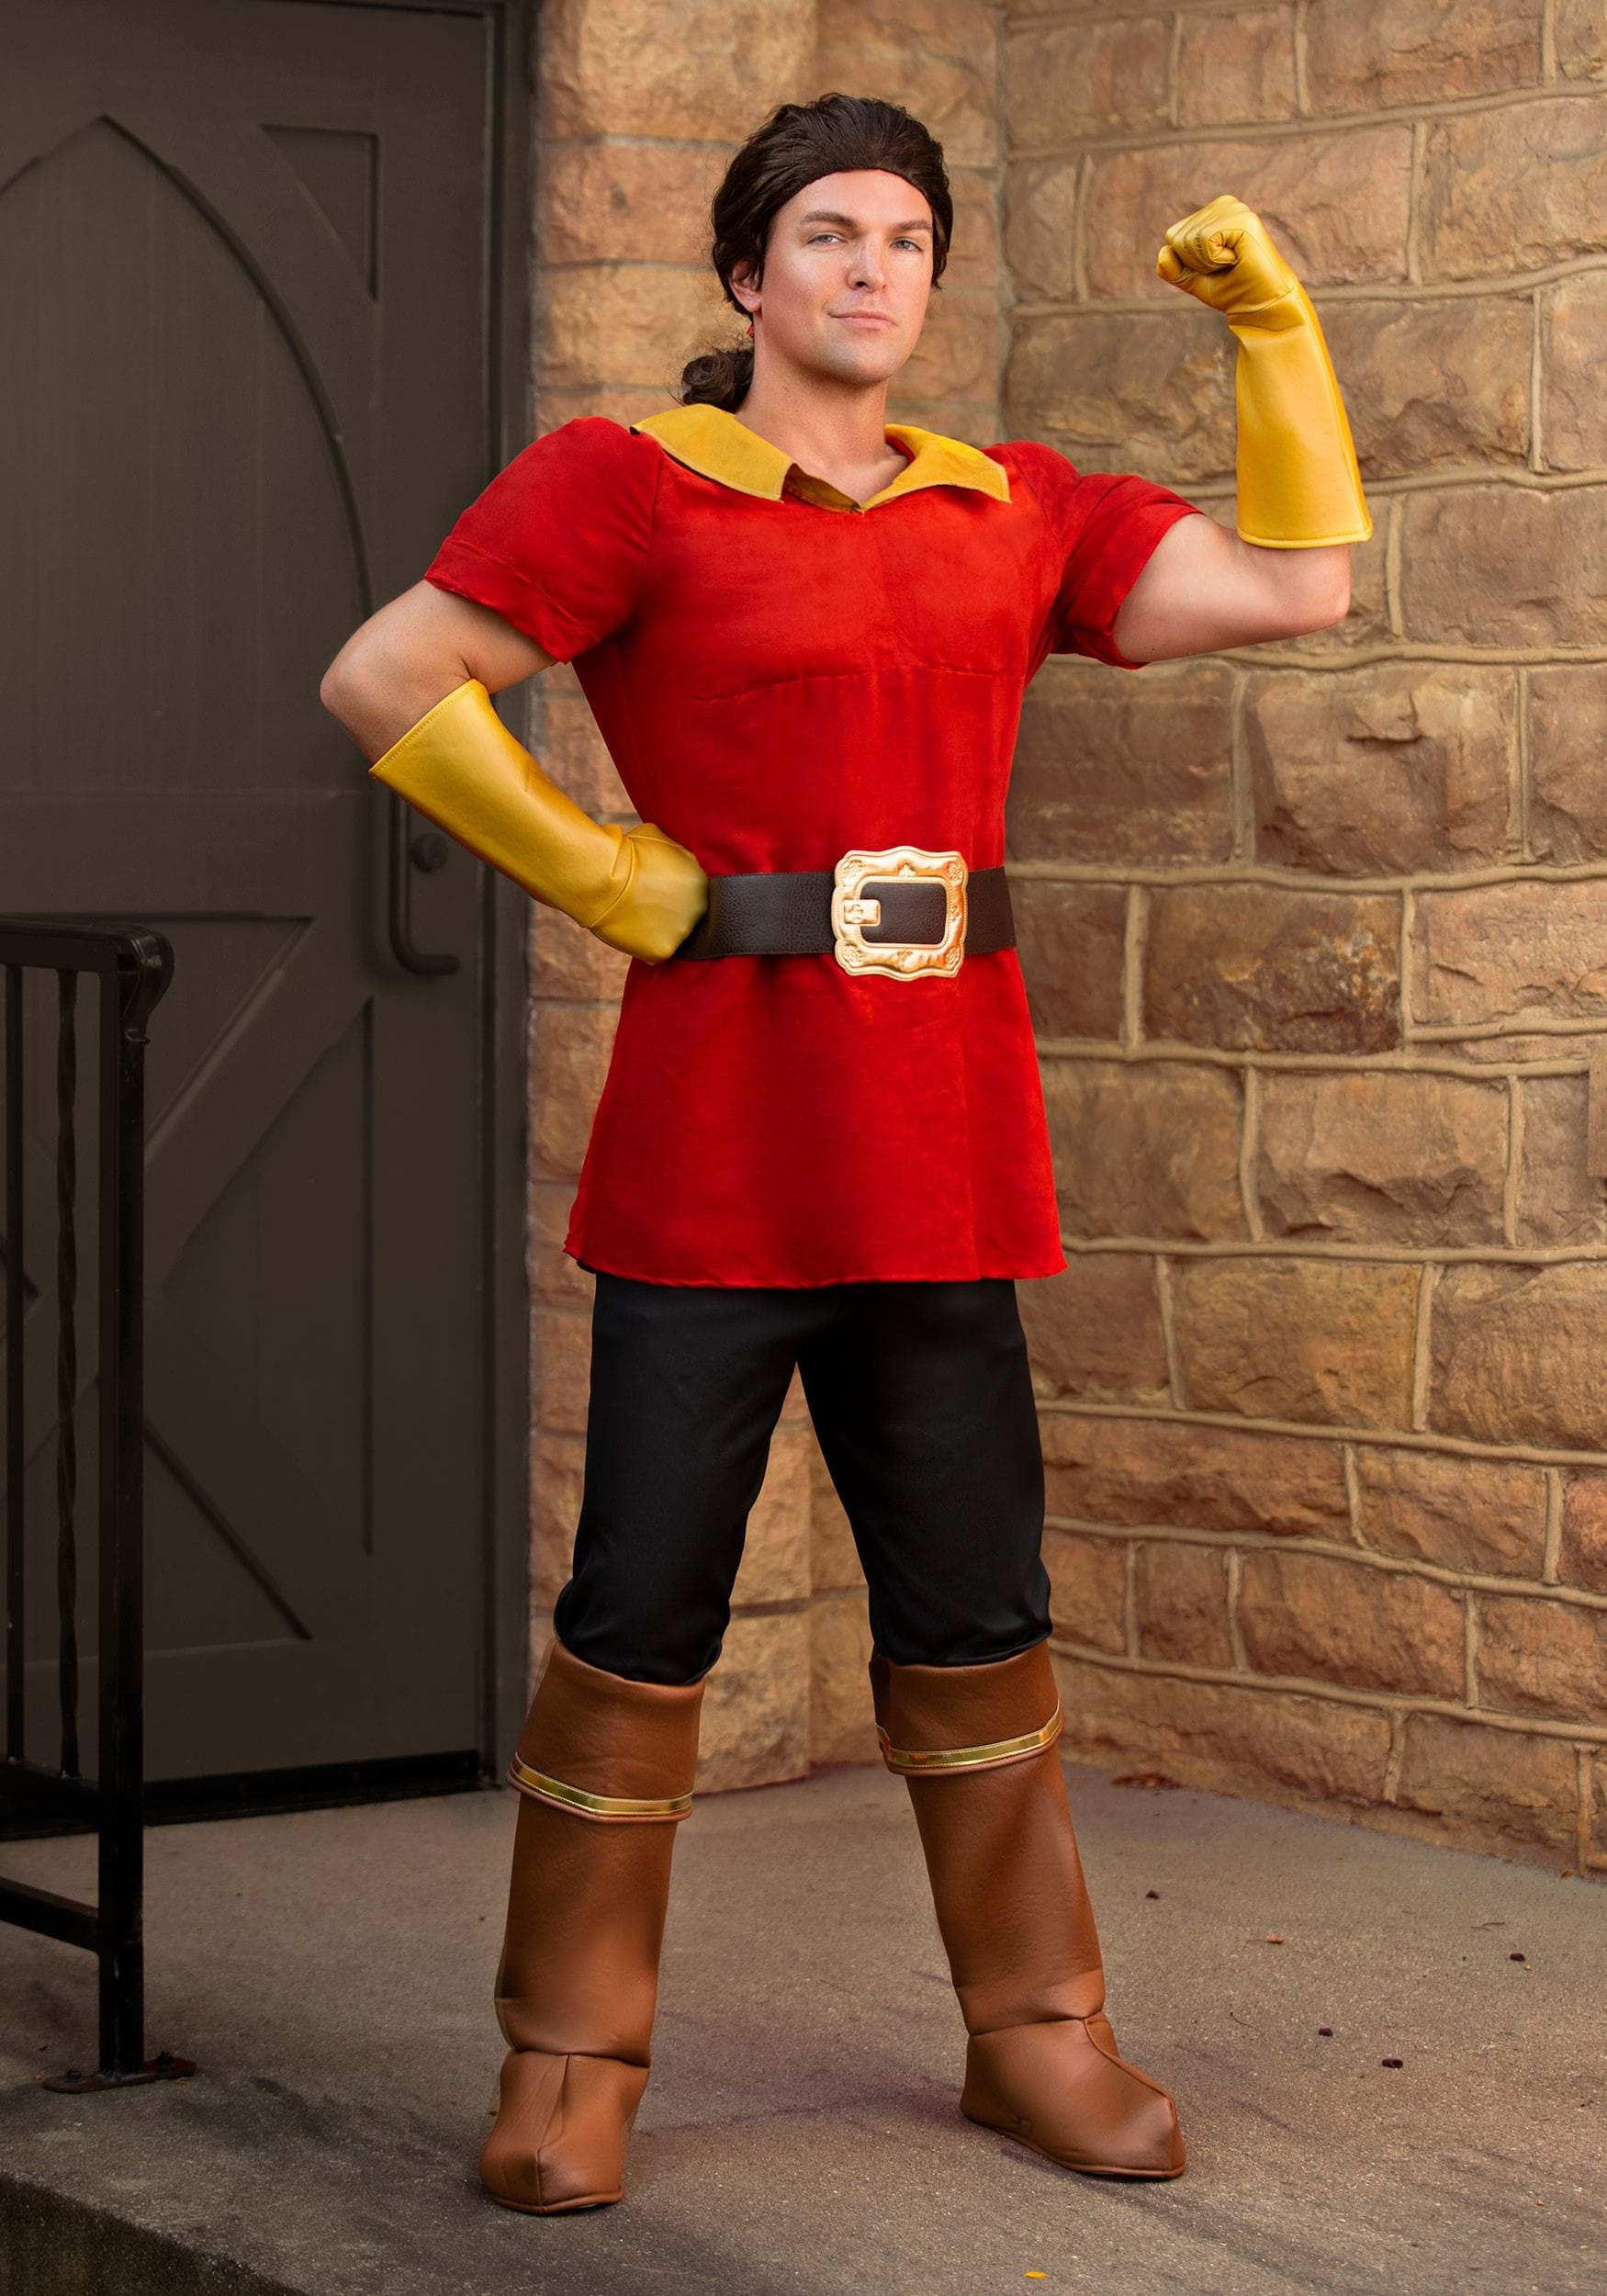 Disney Beauty and the Beast Gaston Fancy Dress Costume for Men